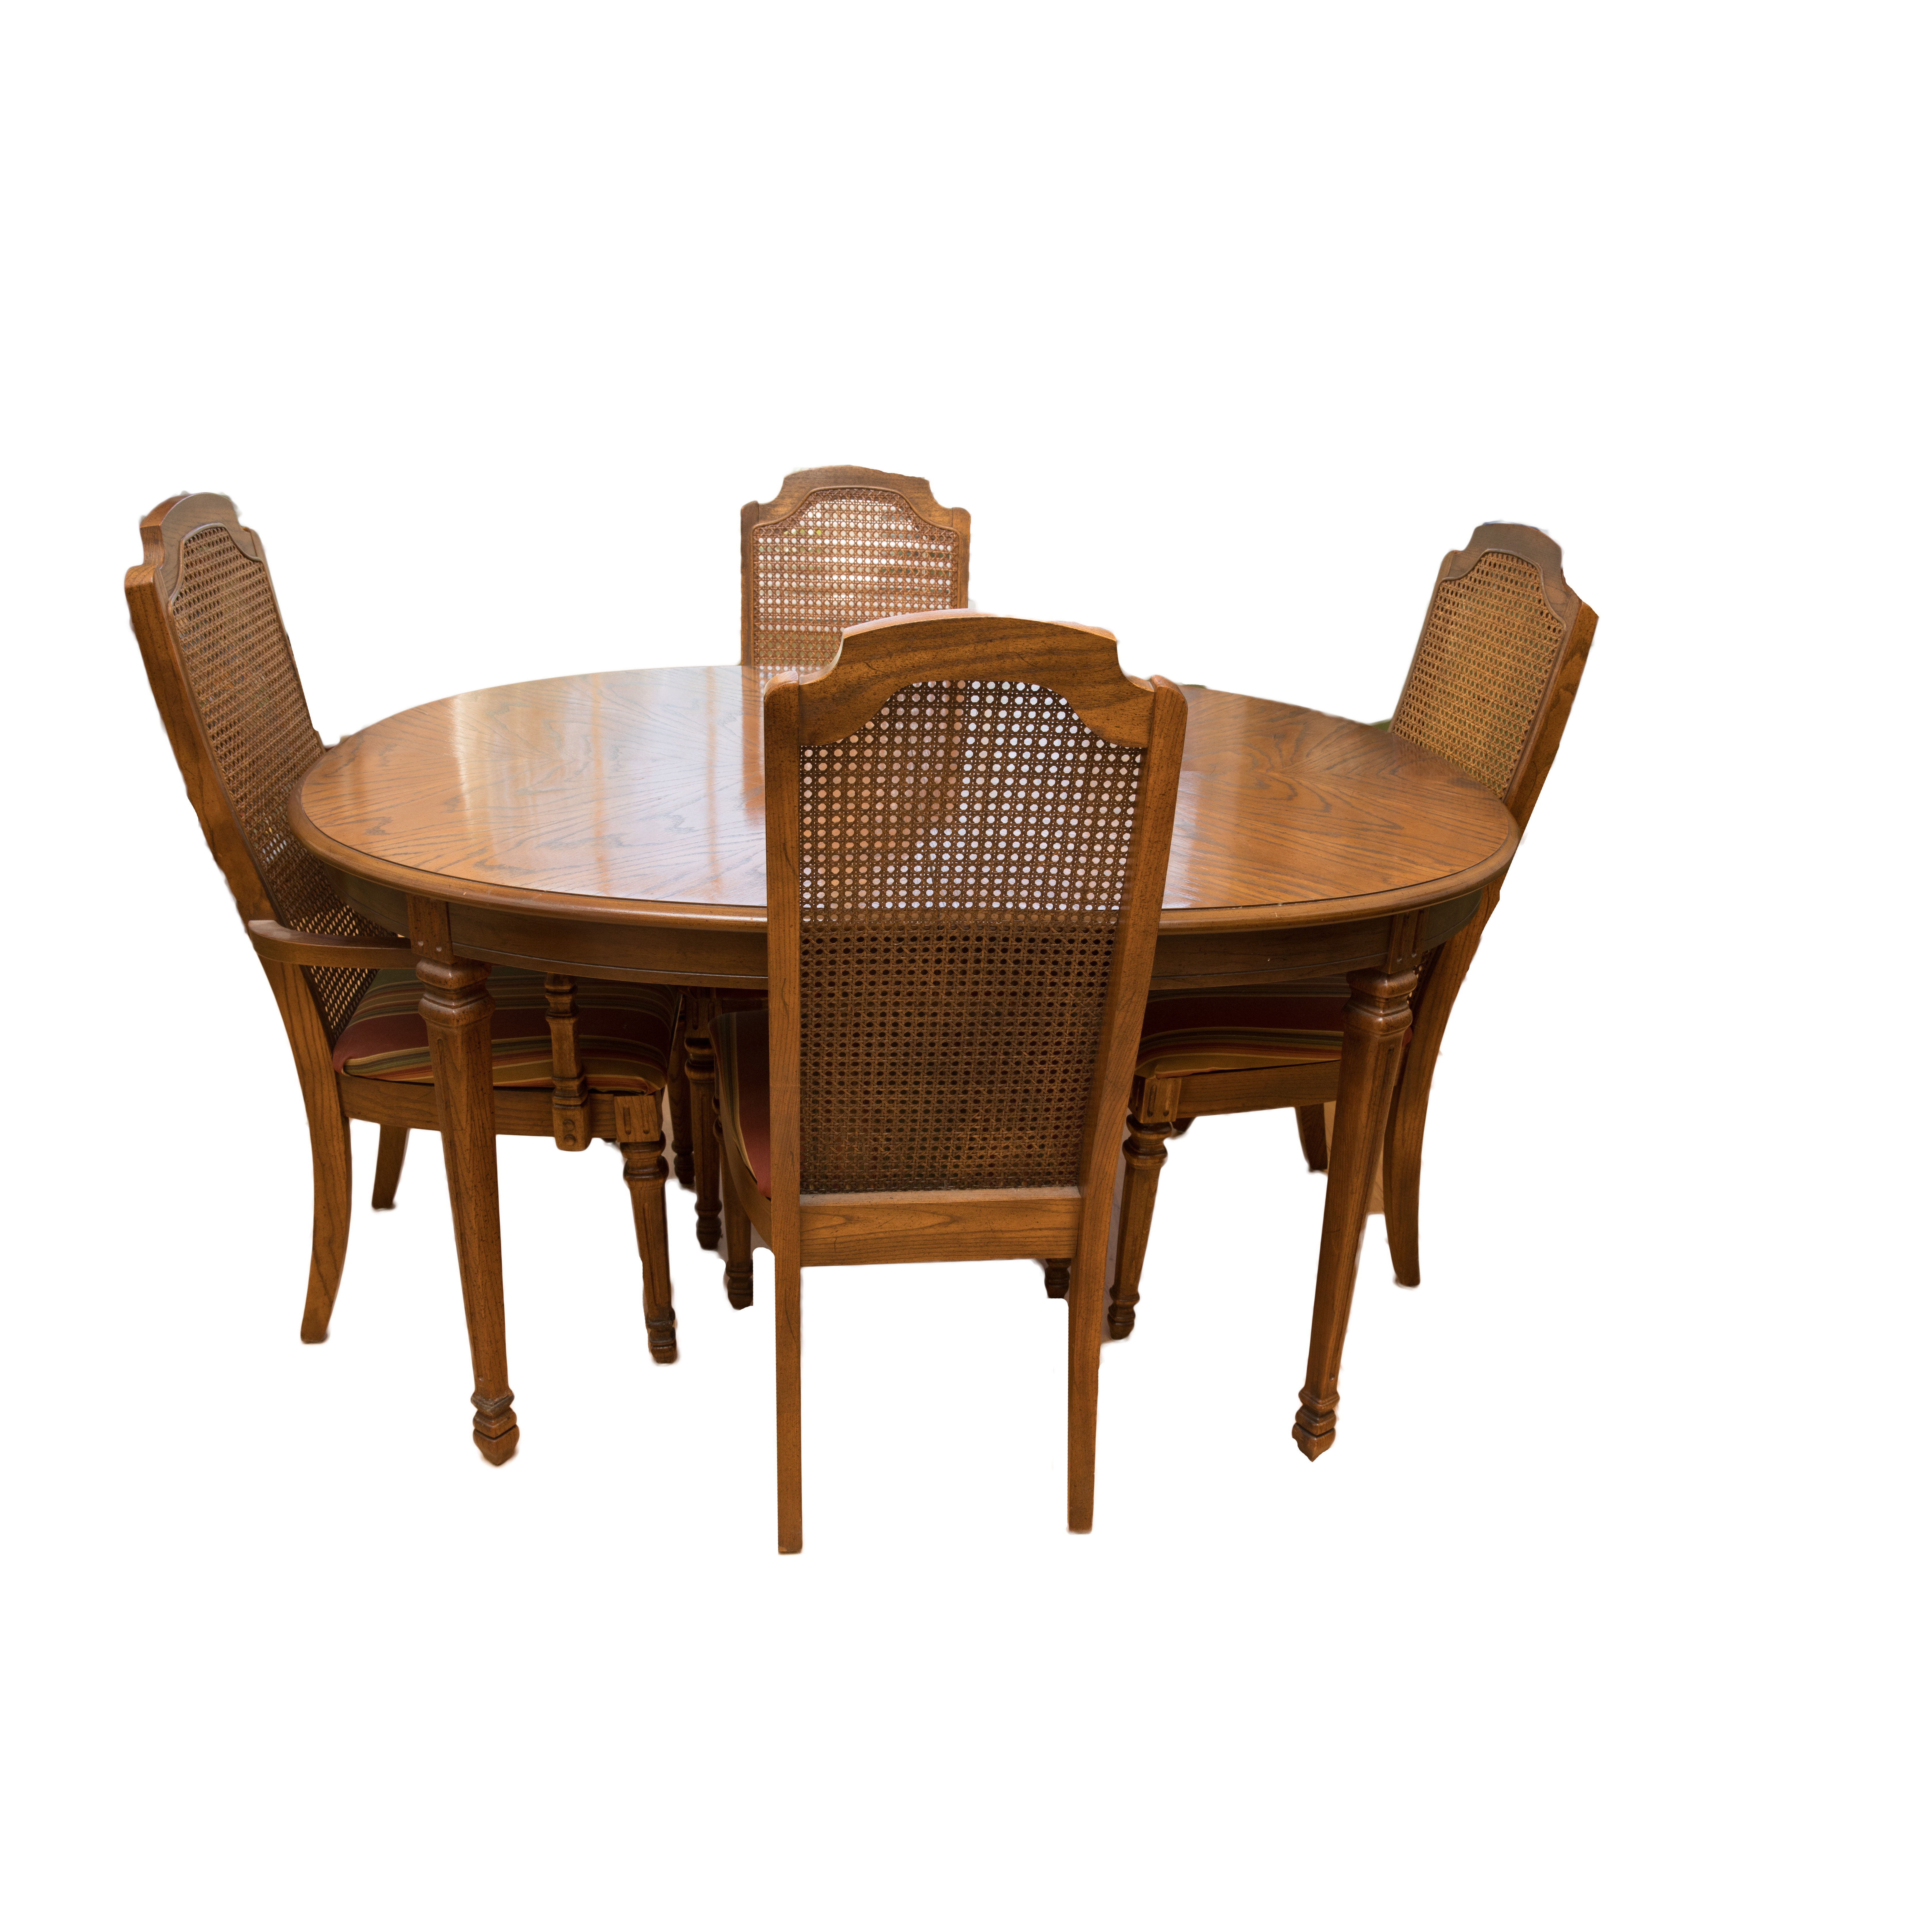 Oval Dining Room Table with Four Cane Back Chairs